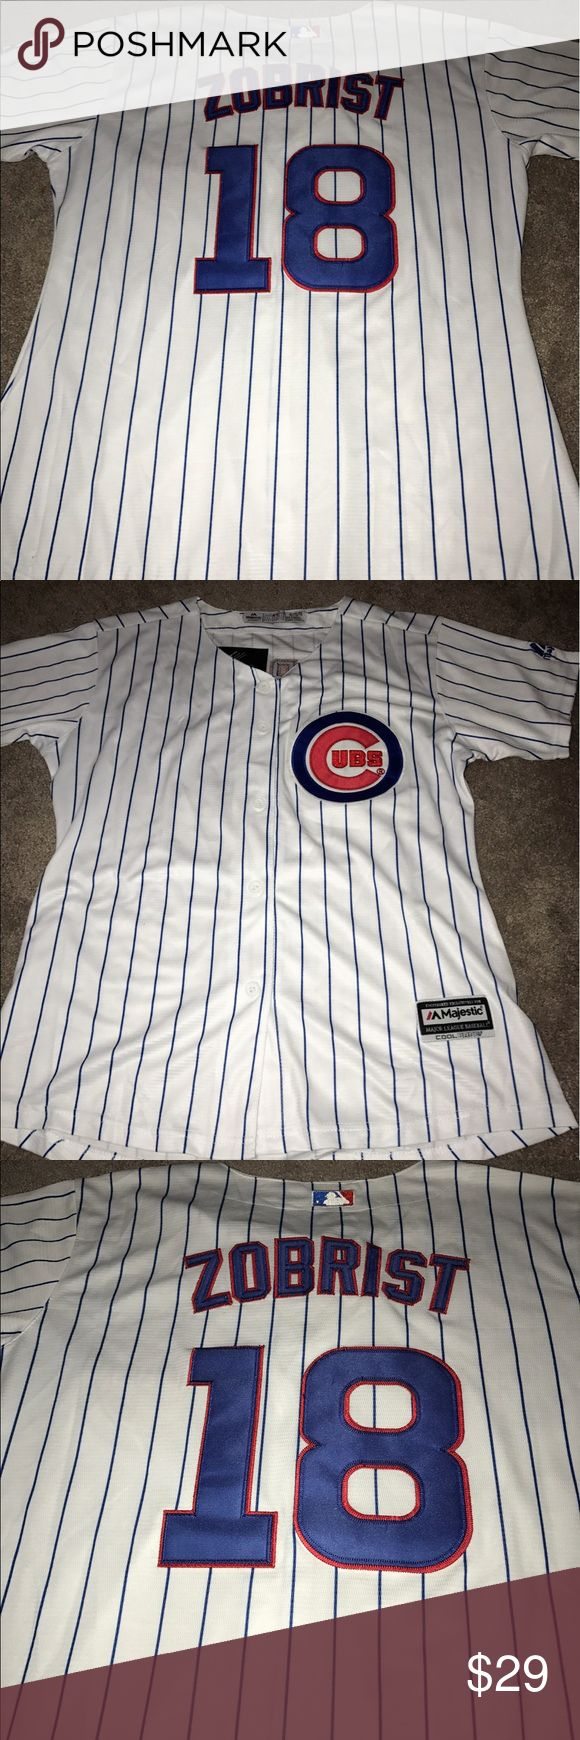 Women's Chicago Cubs Ben Zobrist jersey (XL) Women's Chicago Cubs Ben Zobrist Majestic Athletic home jersey. Brand new with tags, fully embroidered, size XL. Check my other listings for more Cubs merchandise, including jerseys for Men, Women and Kids! Majestic Tops Button Down Shirts